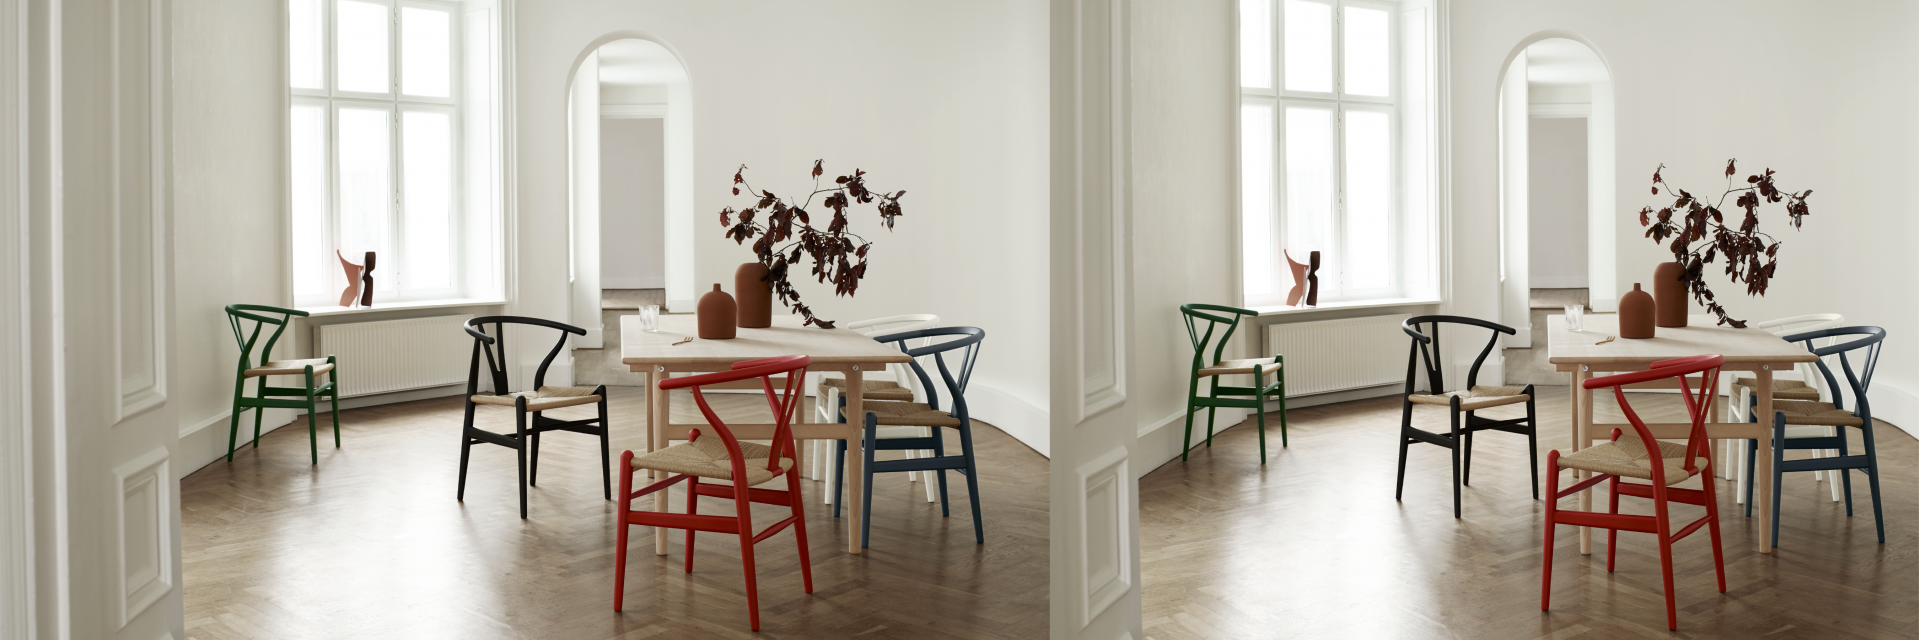 CH24 Soft - Limited Edition, Carl Hansen CH24 Wishbone chair limited edition, CH24 limited edition 2020